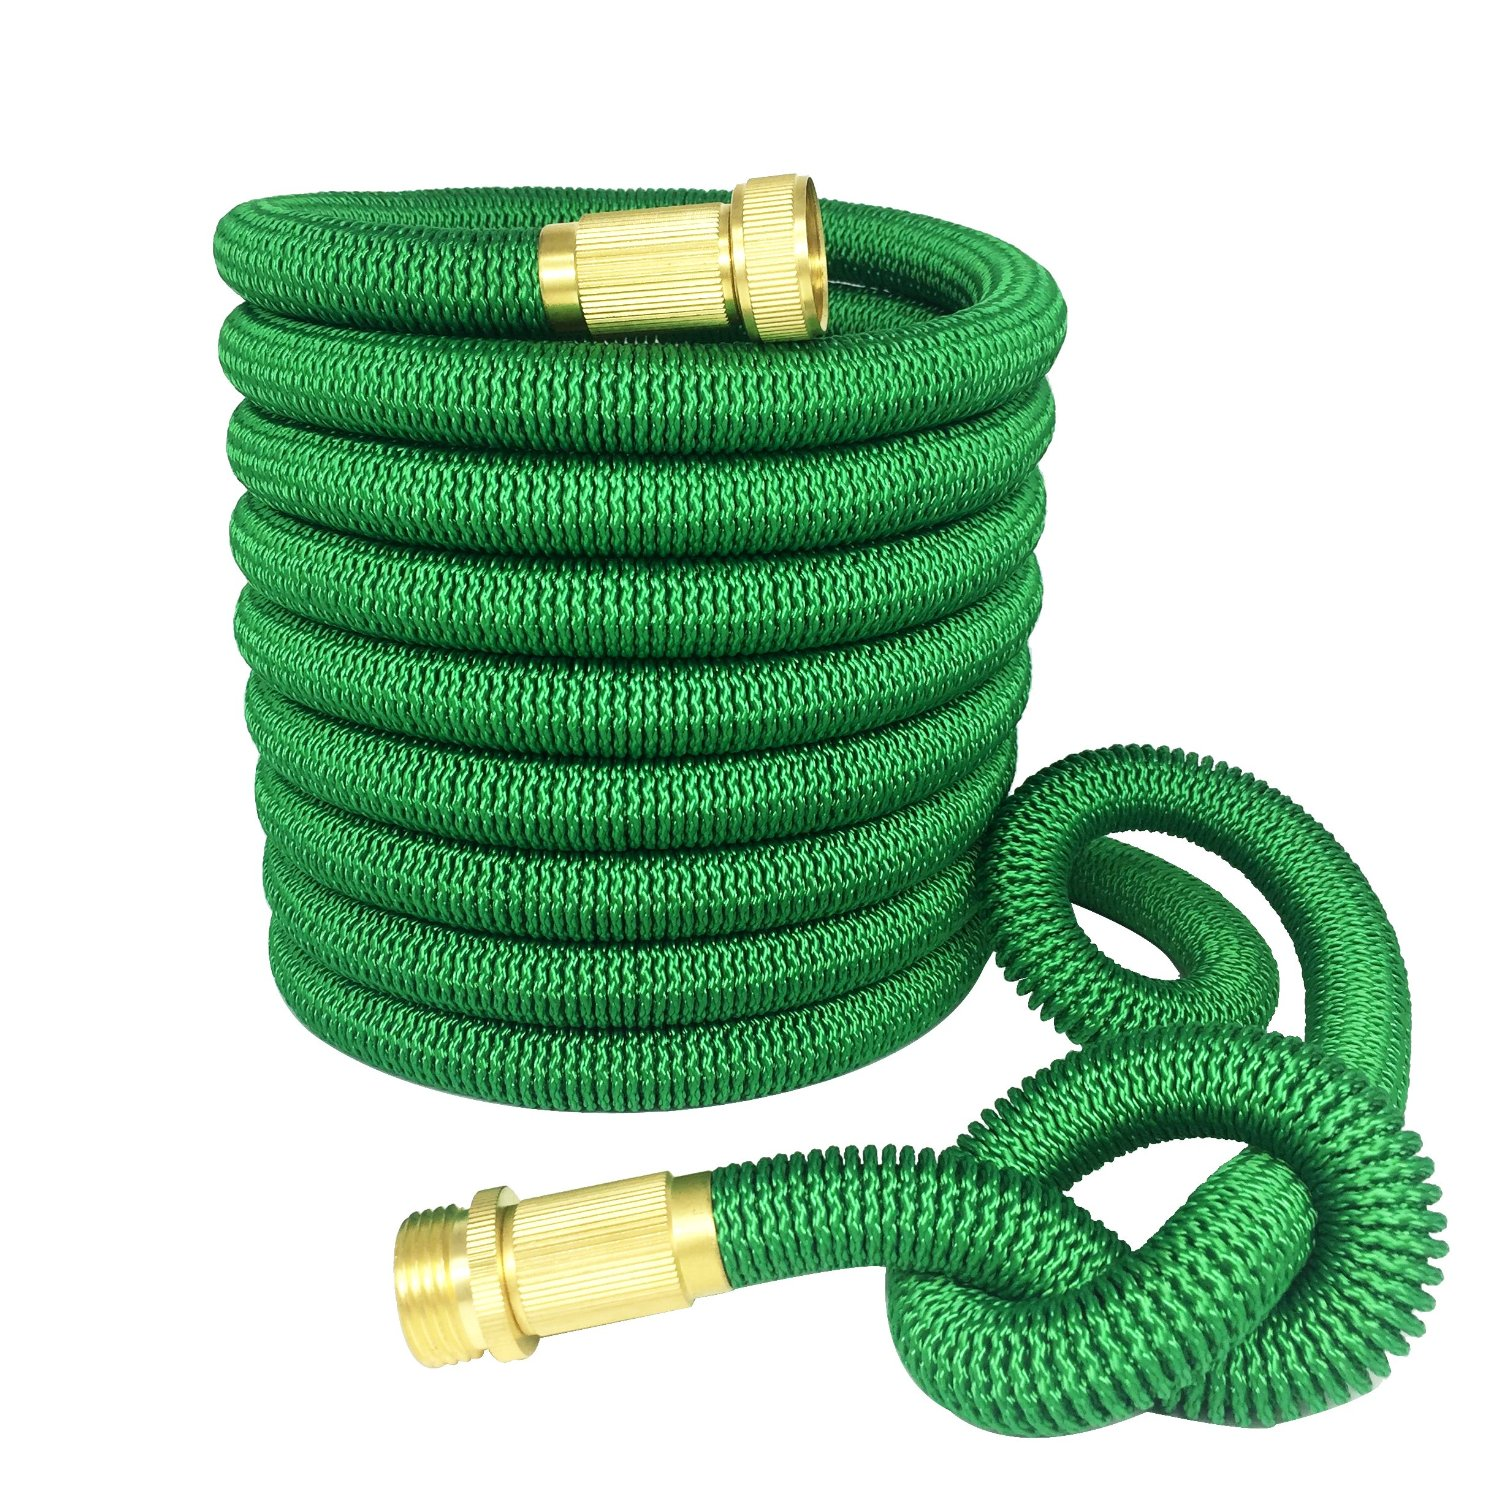 China New 3X Expandable Garden Hose HT1079B factory manufacturer supplier